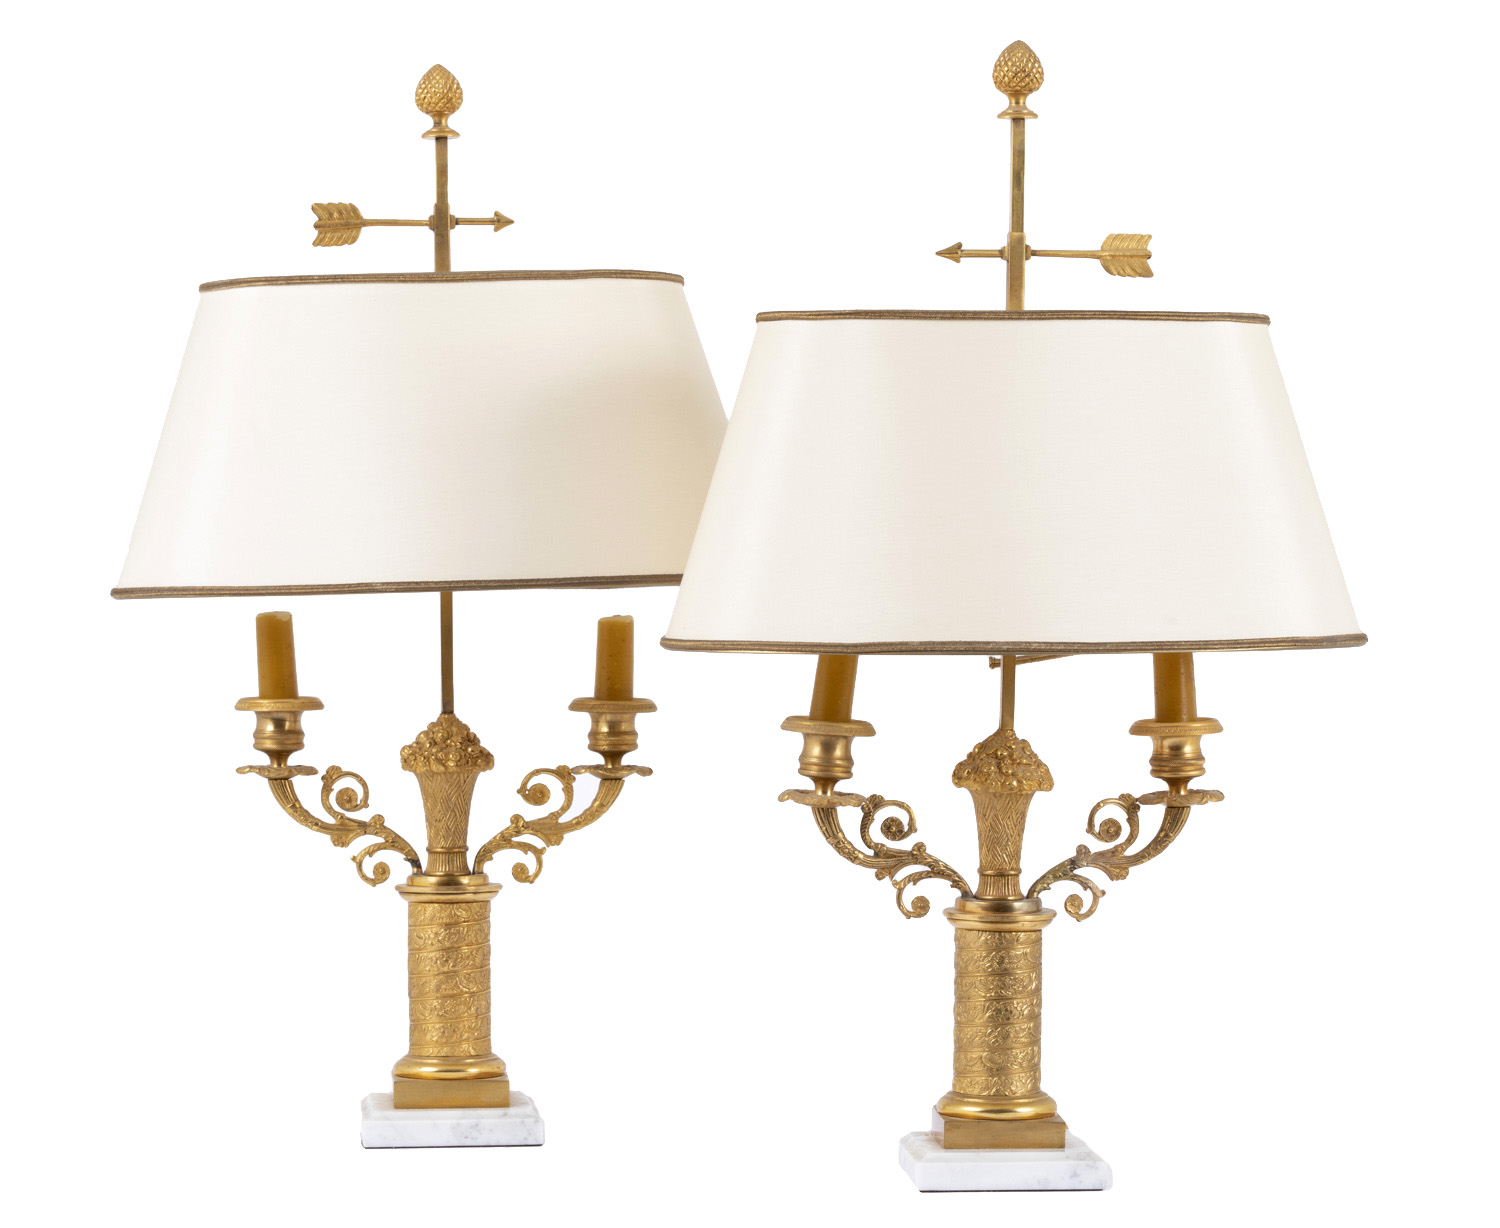 Pair Of Bouillotte Lamps Restoration Style In Gilt Bronze Circa 1950